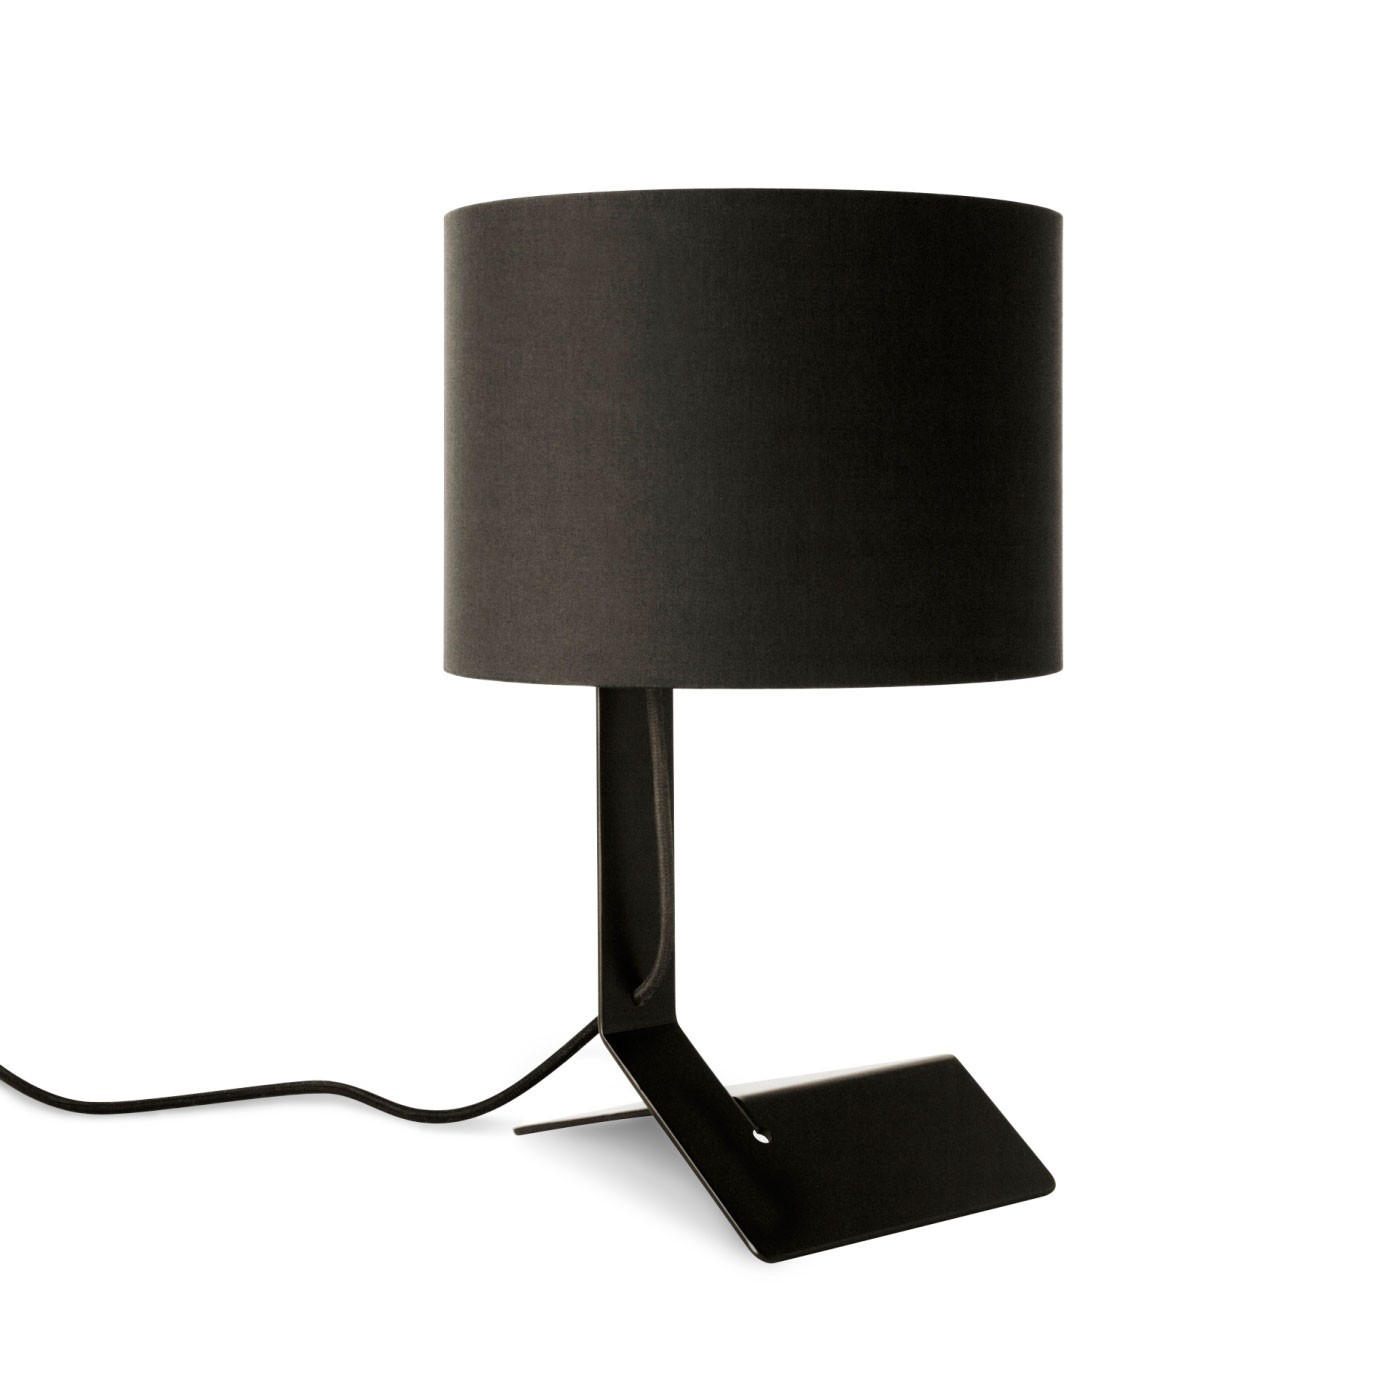 Modern table lamps what should you consider as right for your modern table lamps what should you consider as right for your home geotapseo Gallery